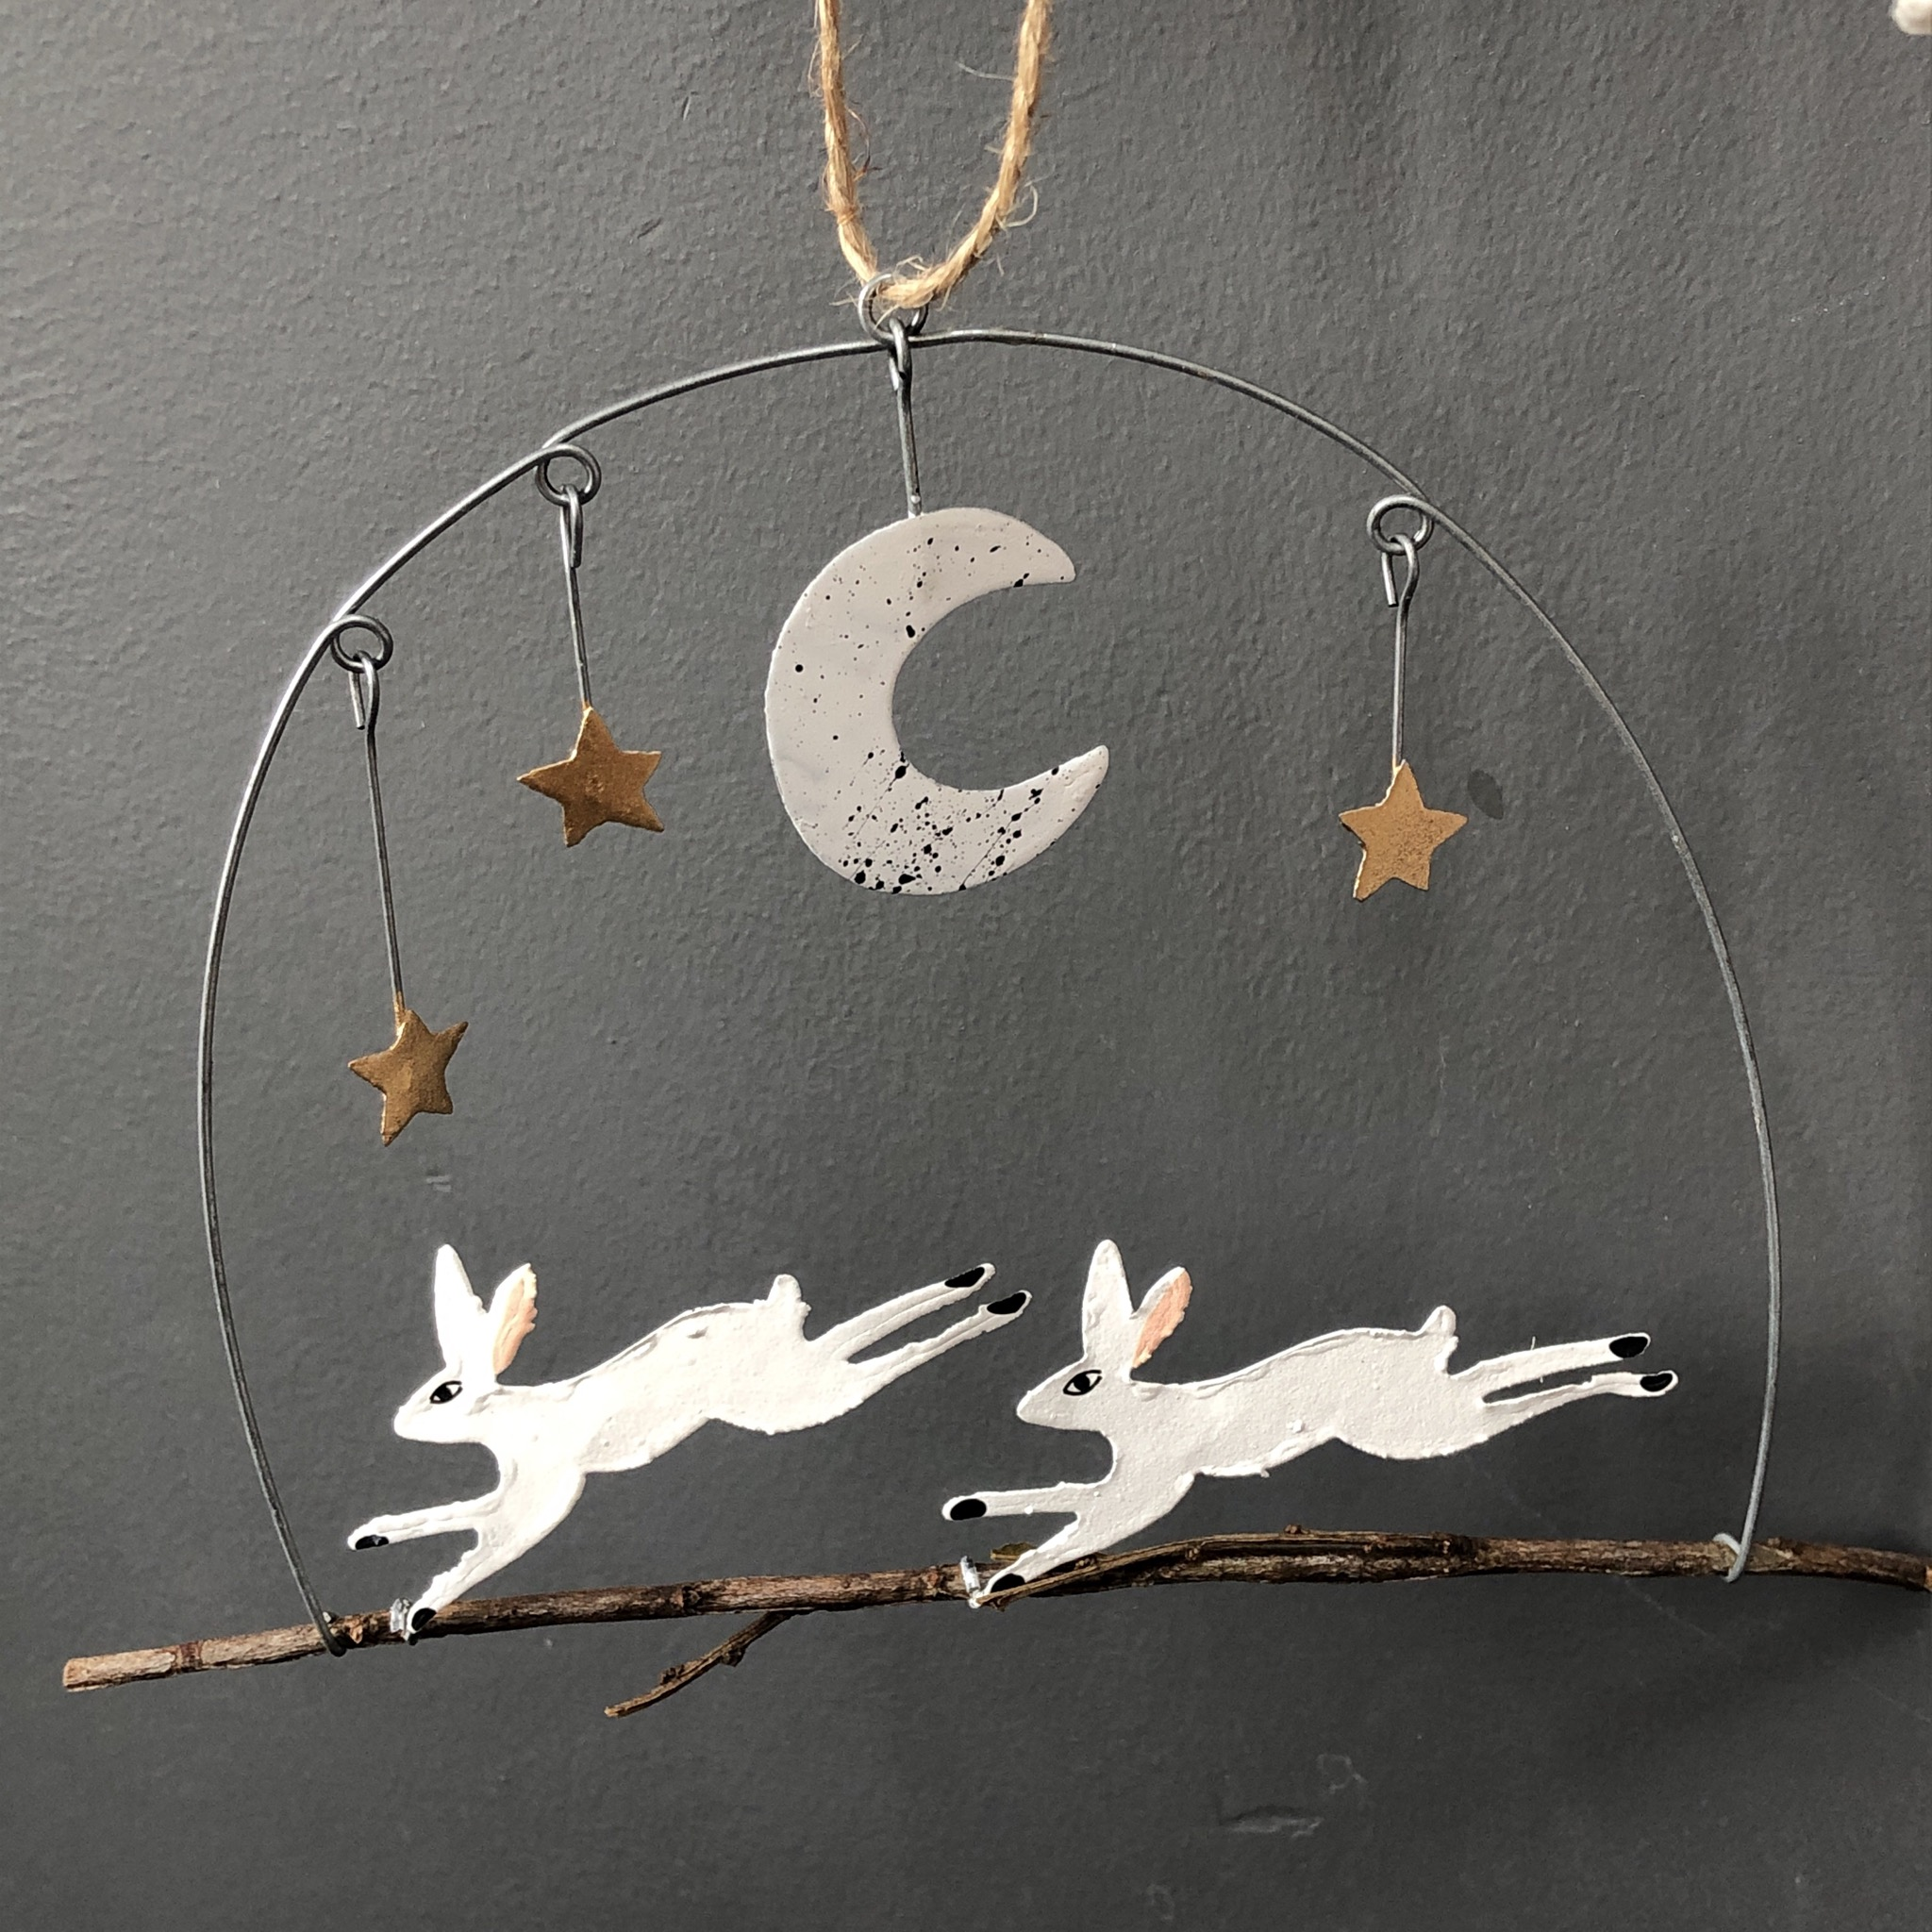 Two running hares  in the moonlight, hanging decoration by shoeless joe